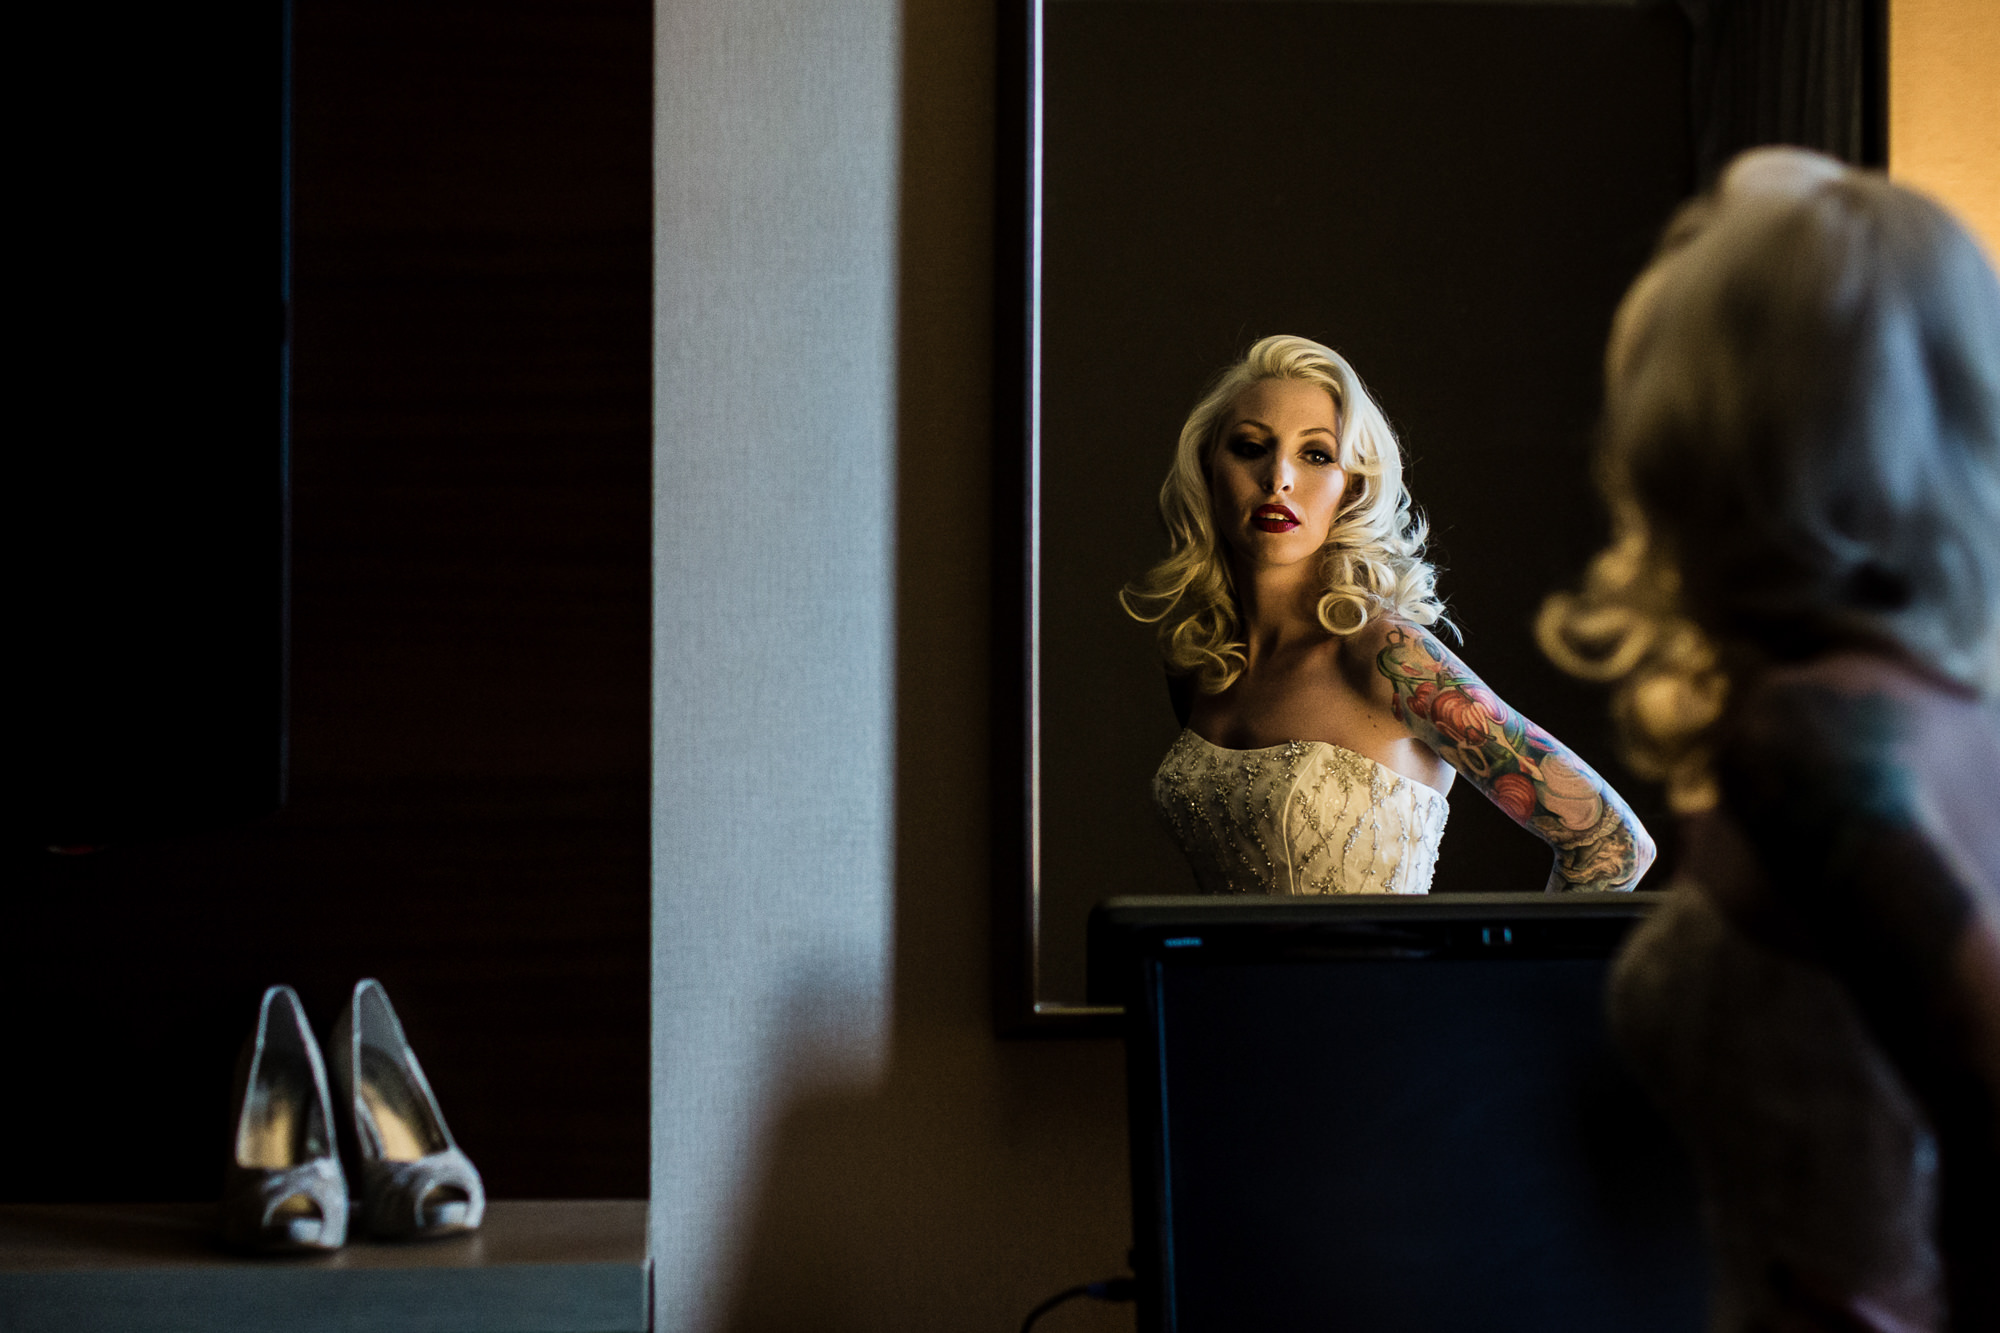 glamorous-vintage-pinup-bride-looking-into-mirror-with-found-shoes-detail-worlds-best-wedding-photos-jag-studios-connecticut-wedding-photographers